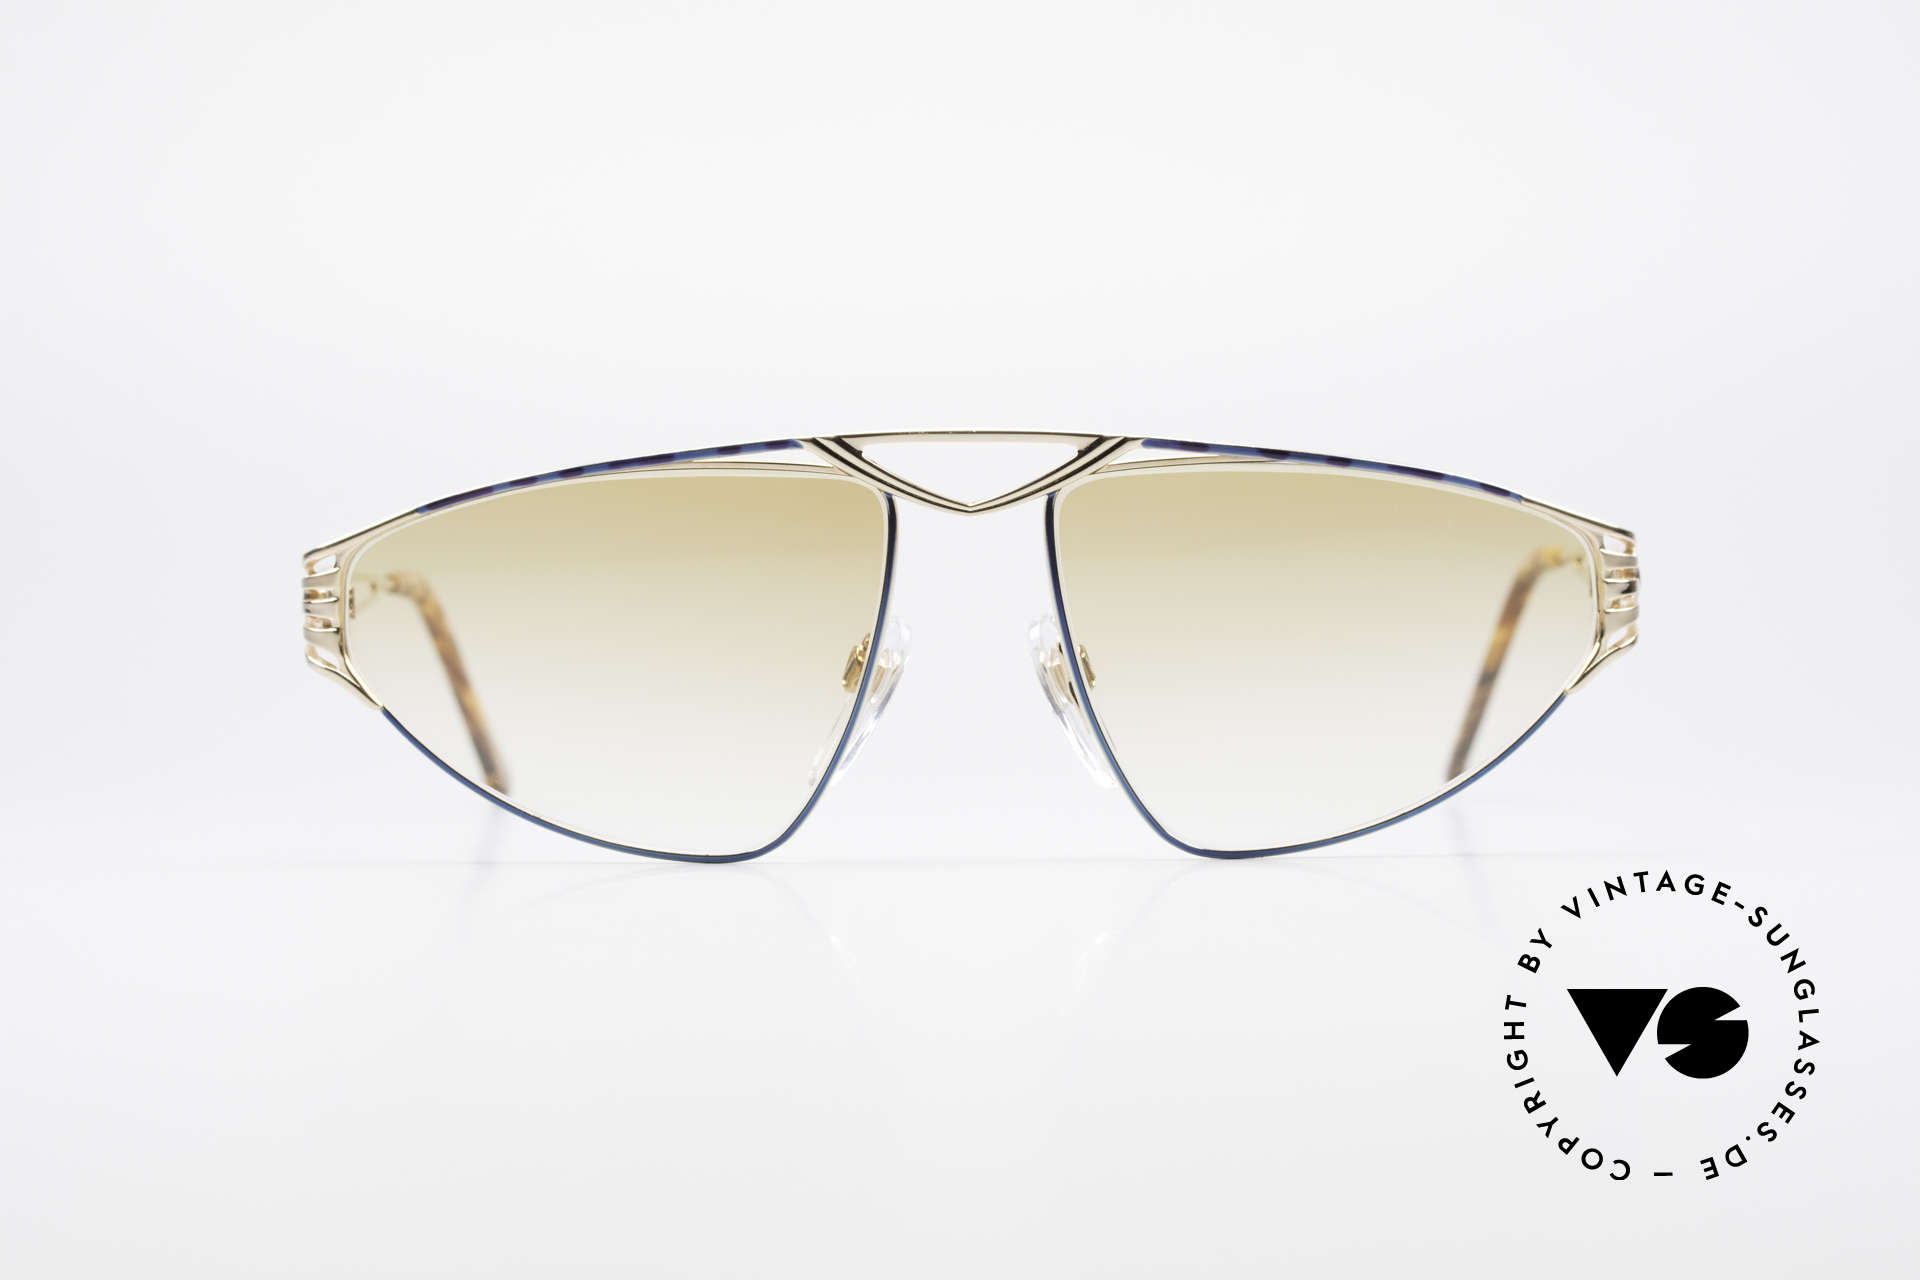 St. Moritz 4410 90's Luxury Sunglasses, designer shades: light tinted lenses; wearable at night, Made for Women